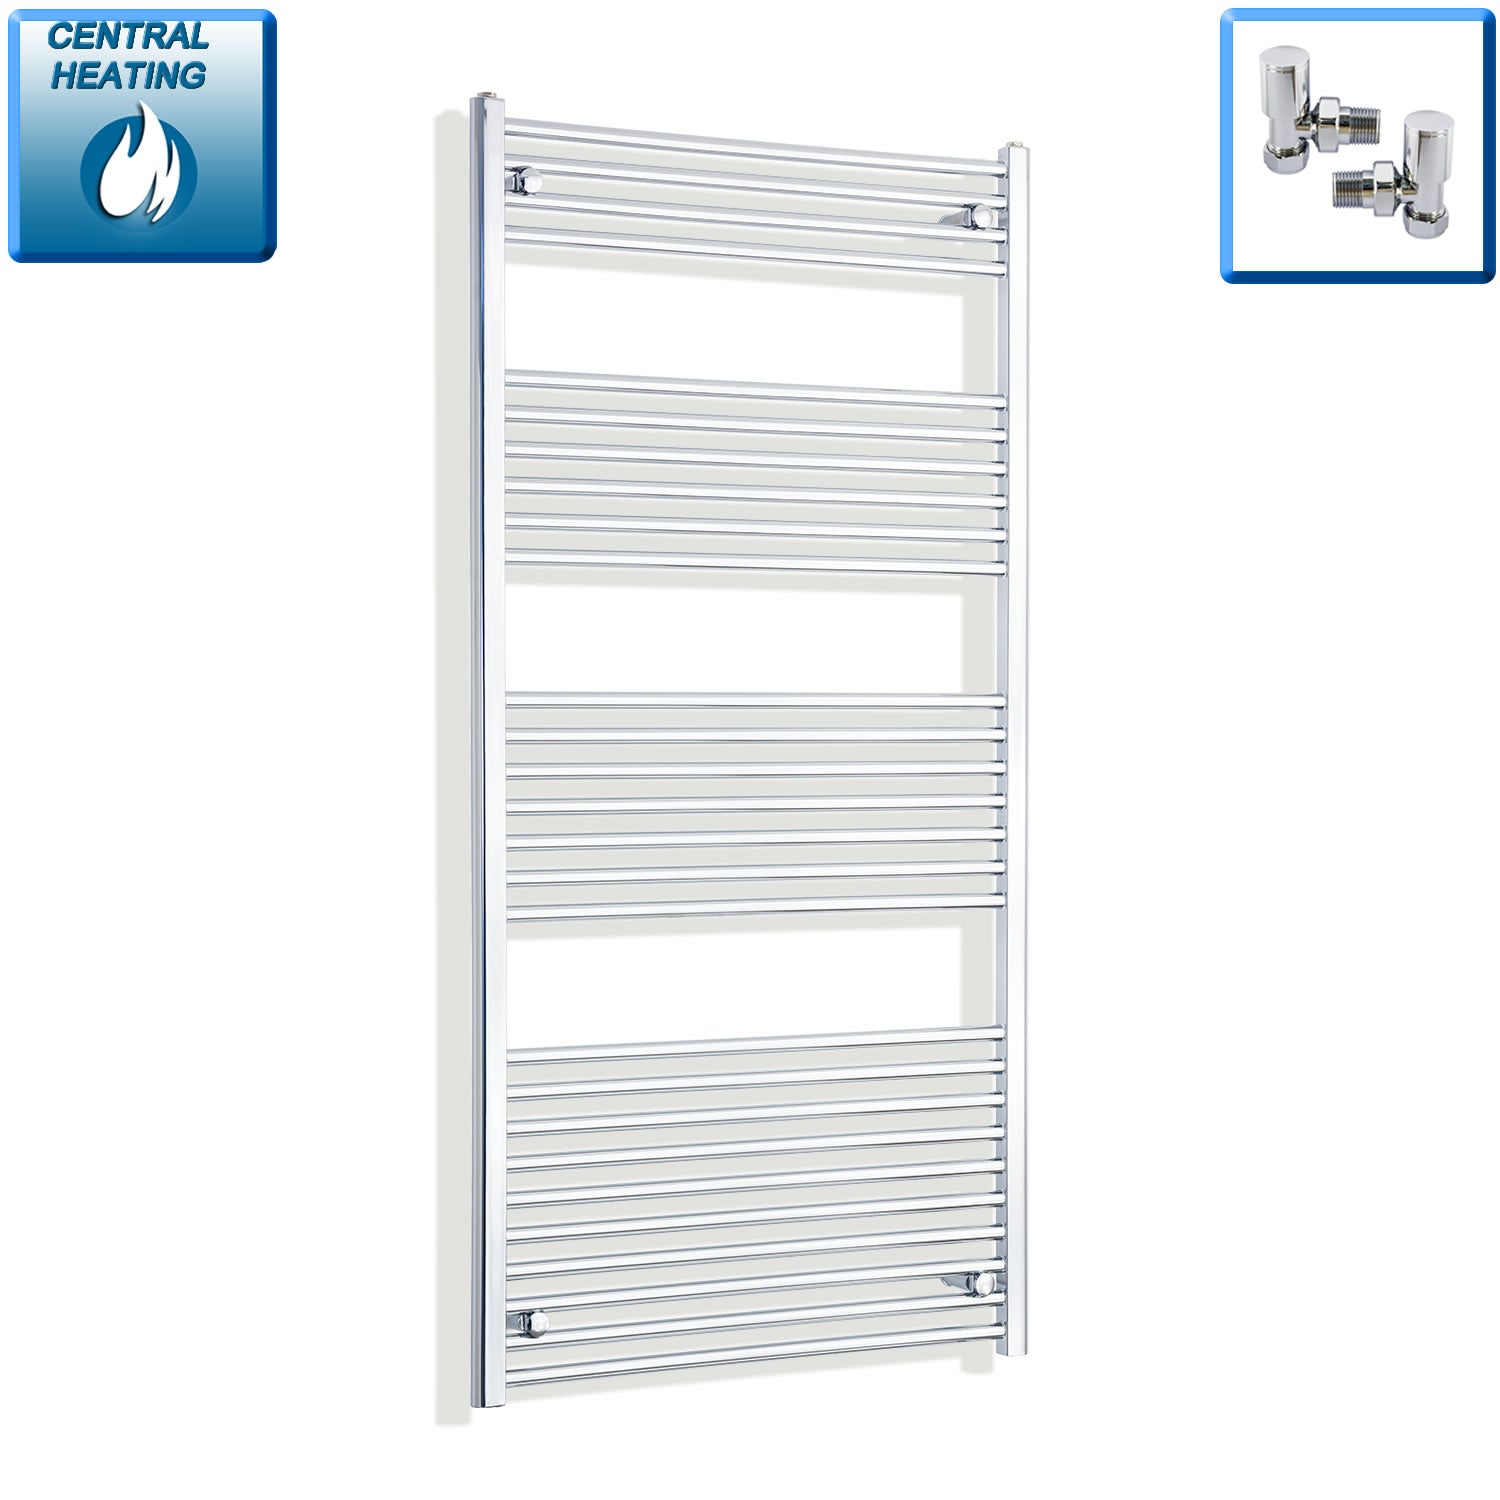 800mm Wide 1600mm High Chrome Towel Rail Radiator With Angled Valve